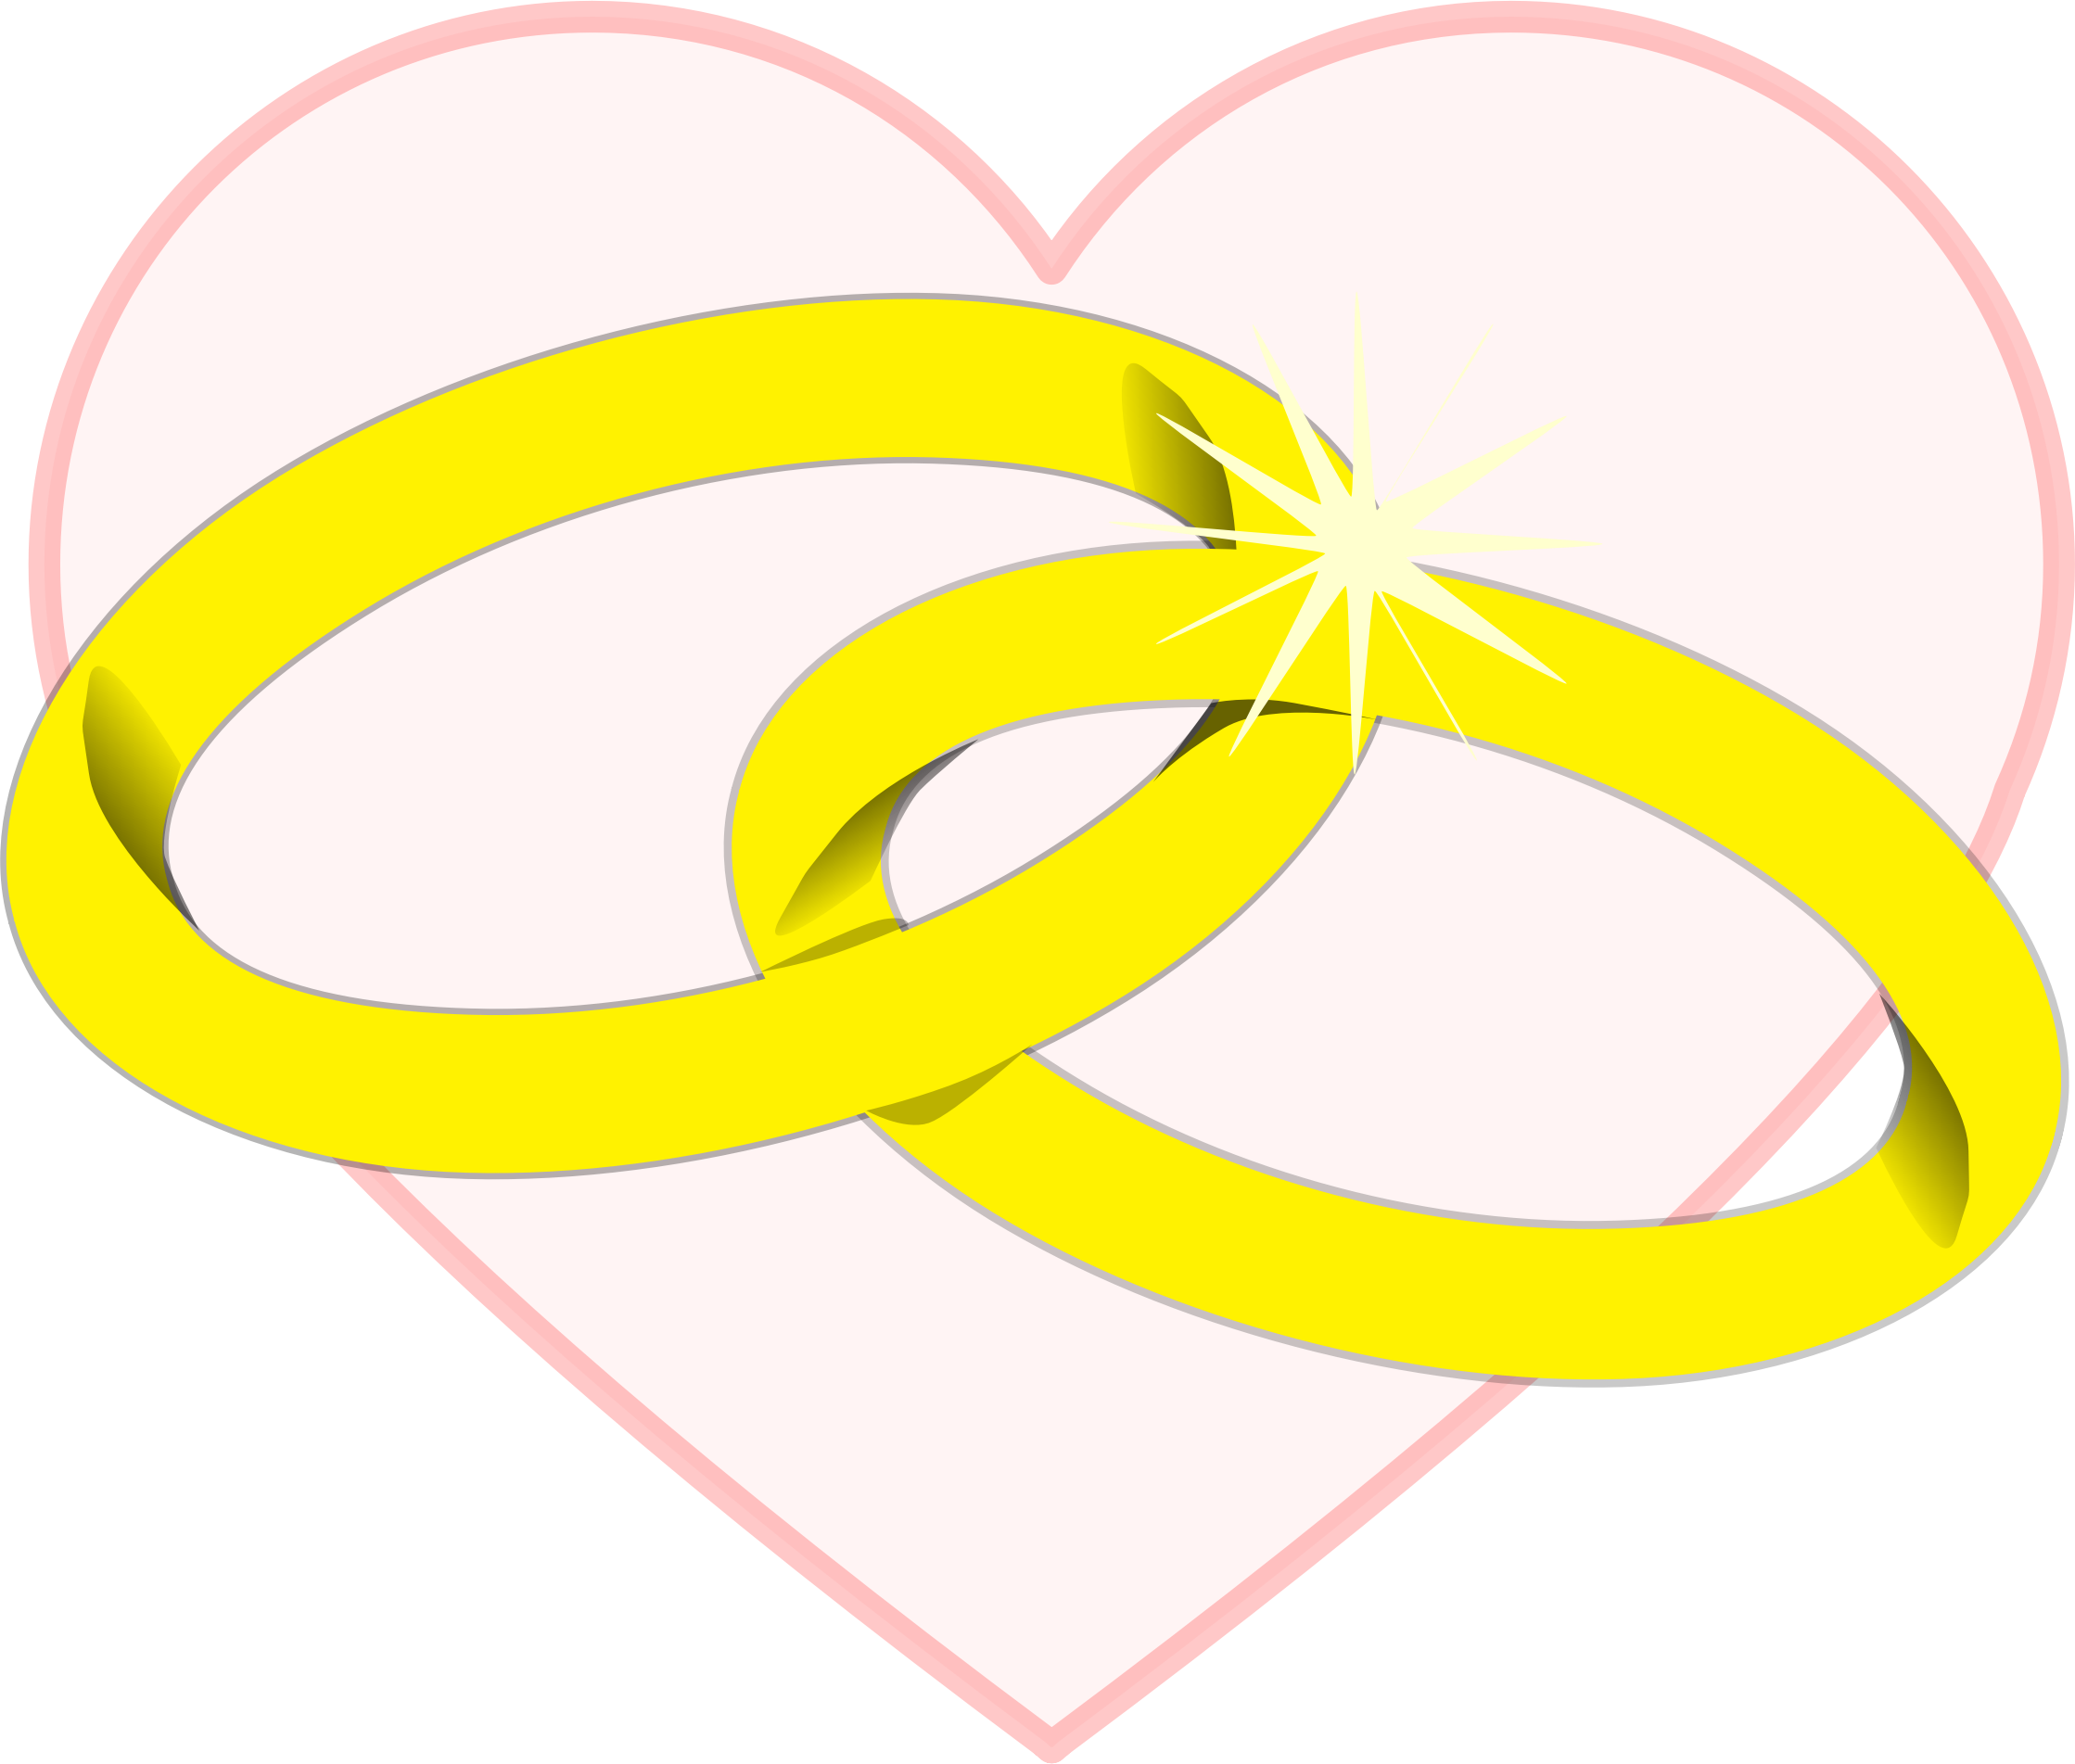 Clipart wedding yellow. Rings big image png